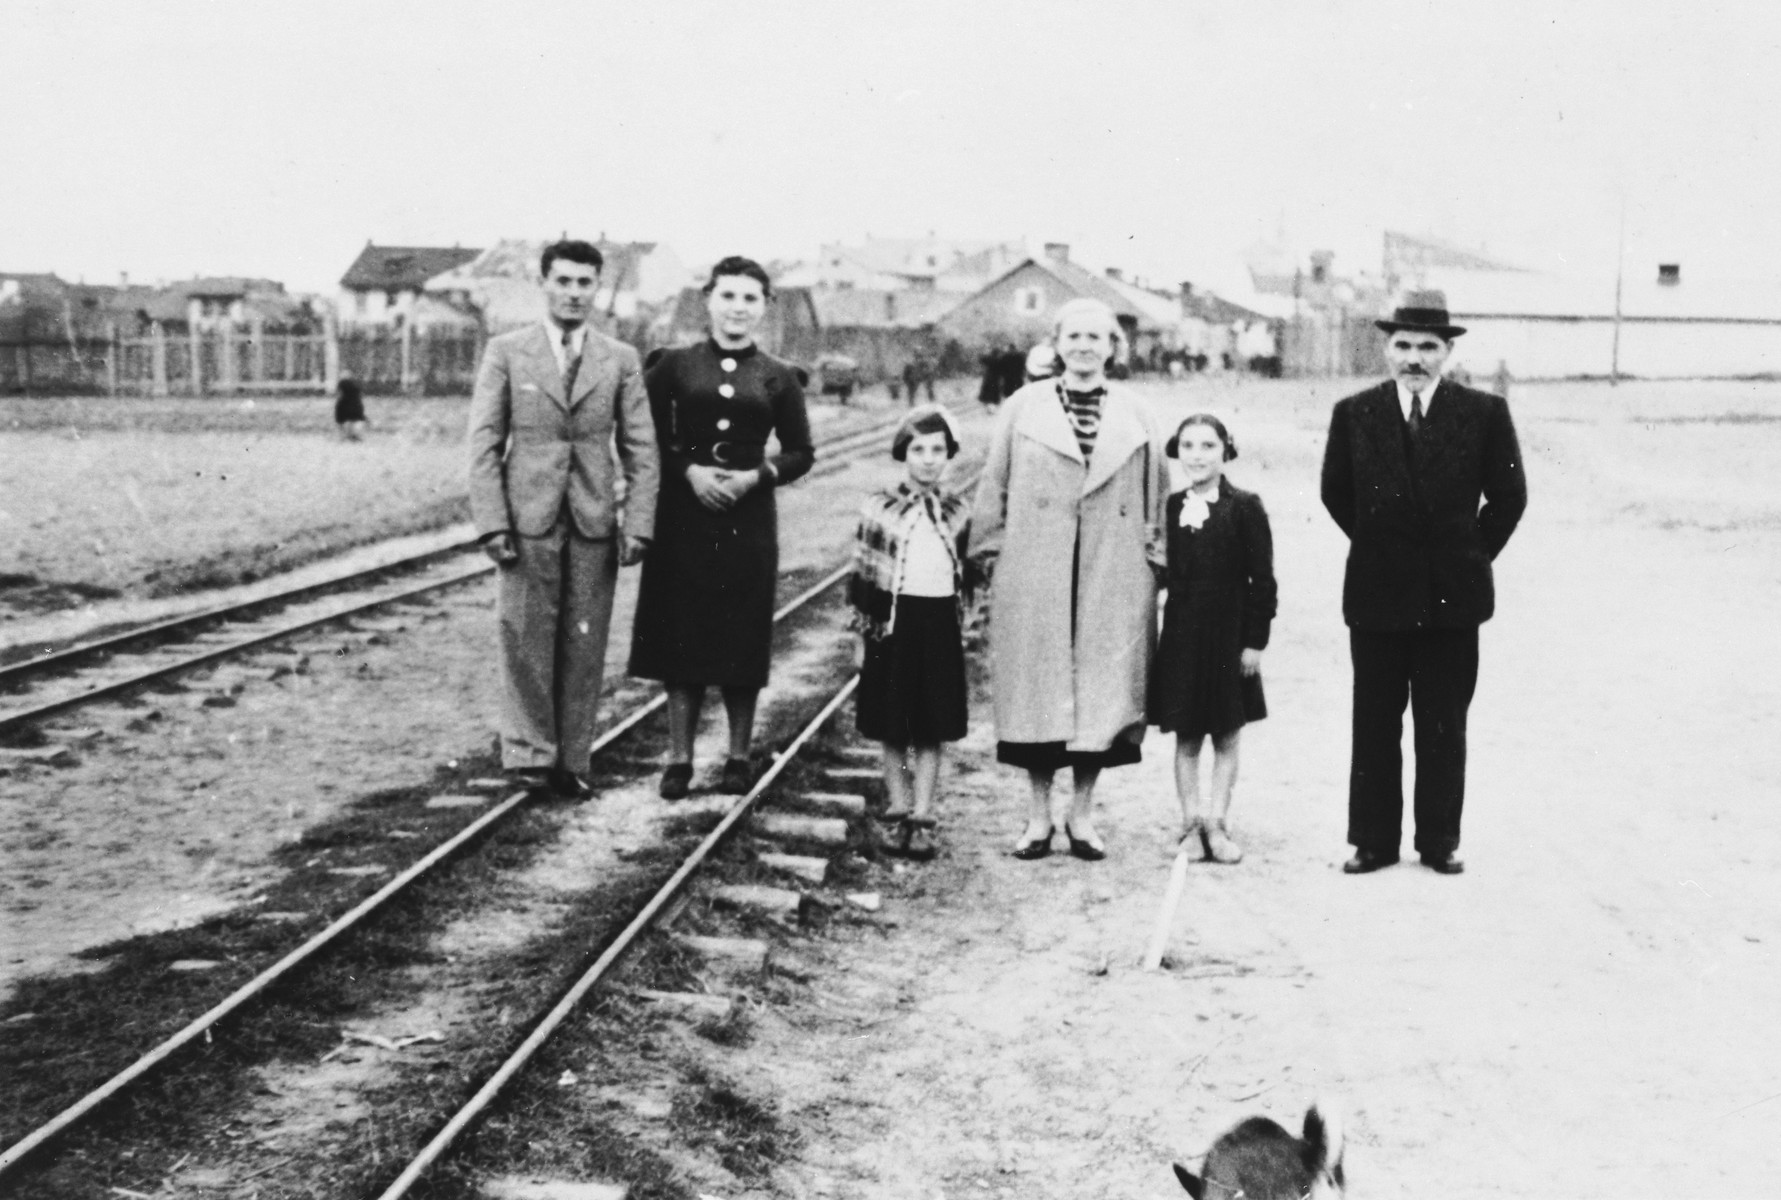 Members of the extended Kleinhandler family pose on a train track at the railroad station in Chmielnik, Poland.  Pictured from left to right are: Avram and Bluma Kleinhandler, Pesele Moszenberg, Chaya Kleinhandler, Zosa Moszenberg and Chaim Kleinhandler.